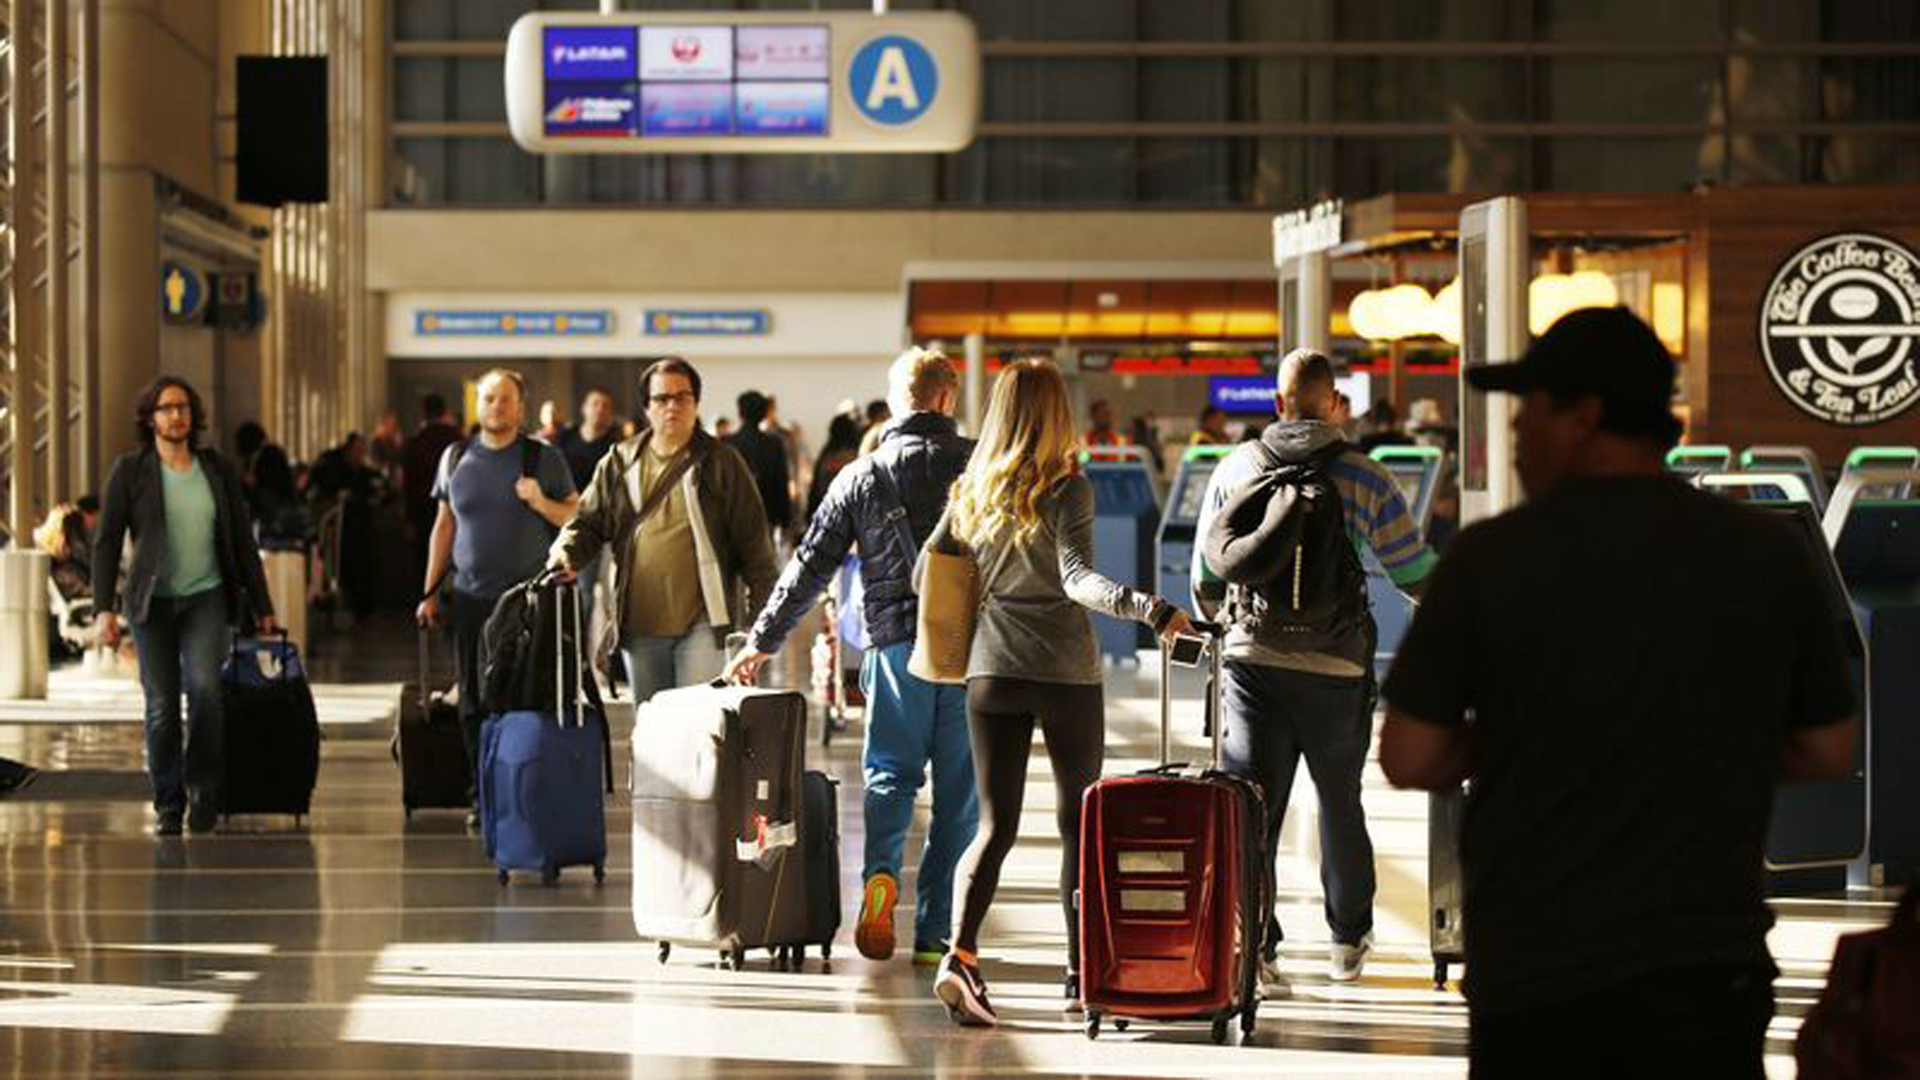 Around 300 people including law enforcement officers and volunteers will take place in an active shooter drill inside Terminal 4 of the Los Angeles International Airport on Tuesday and Wednesday, federal authorities said. (Credit: Al Seib / Los Angeles Times)